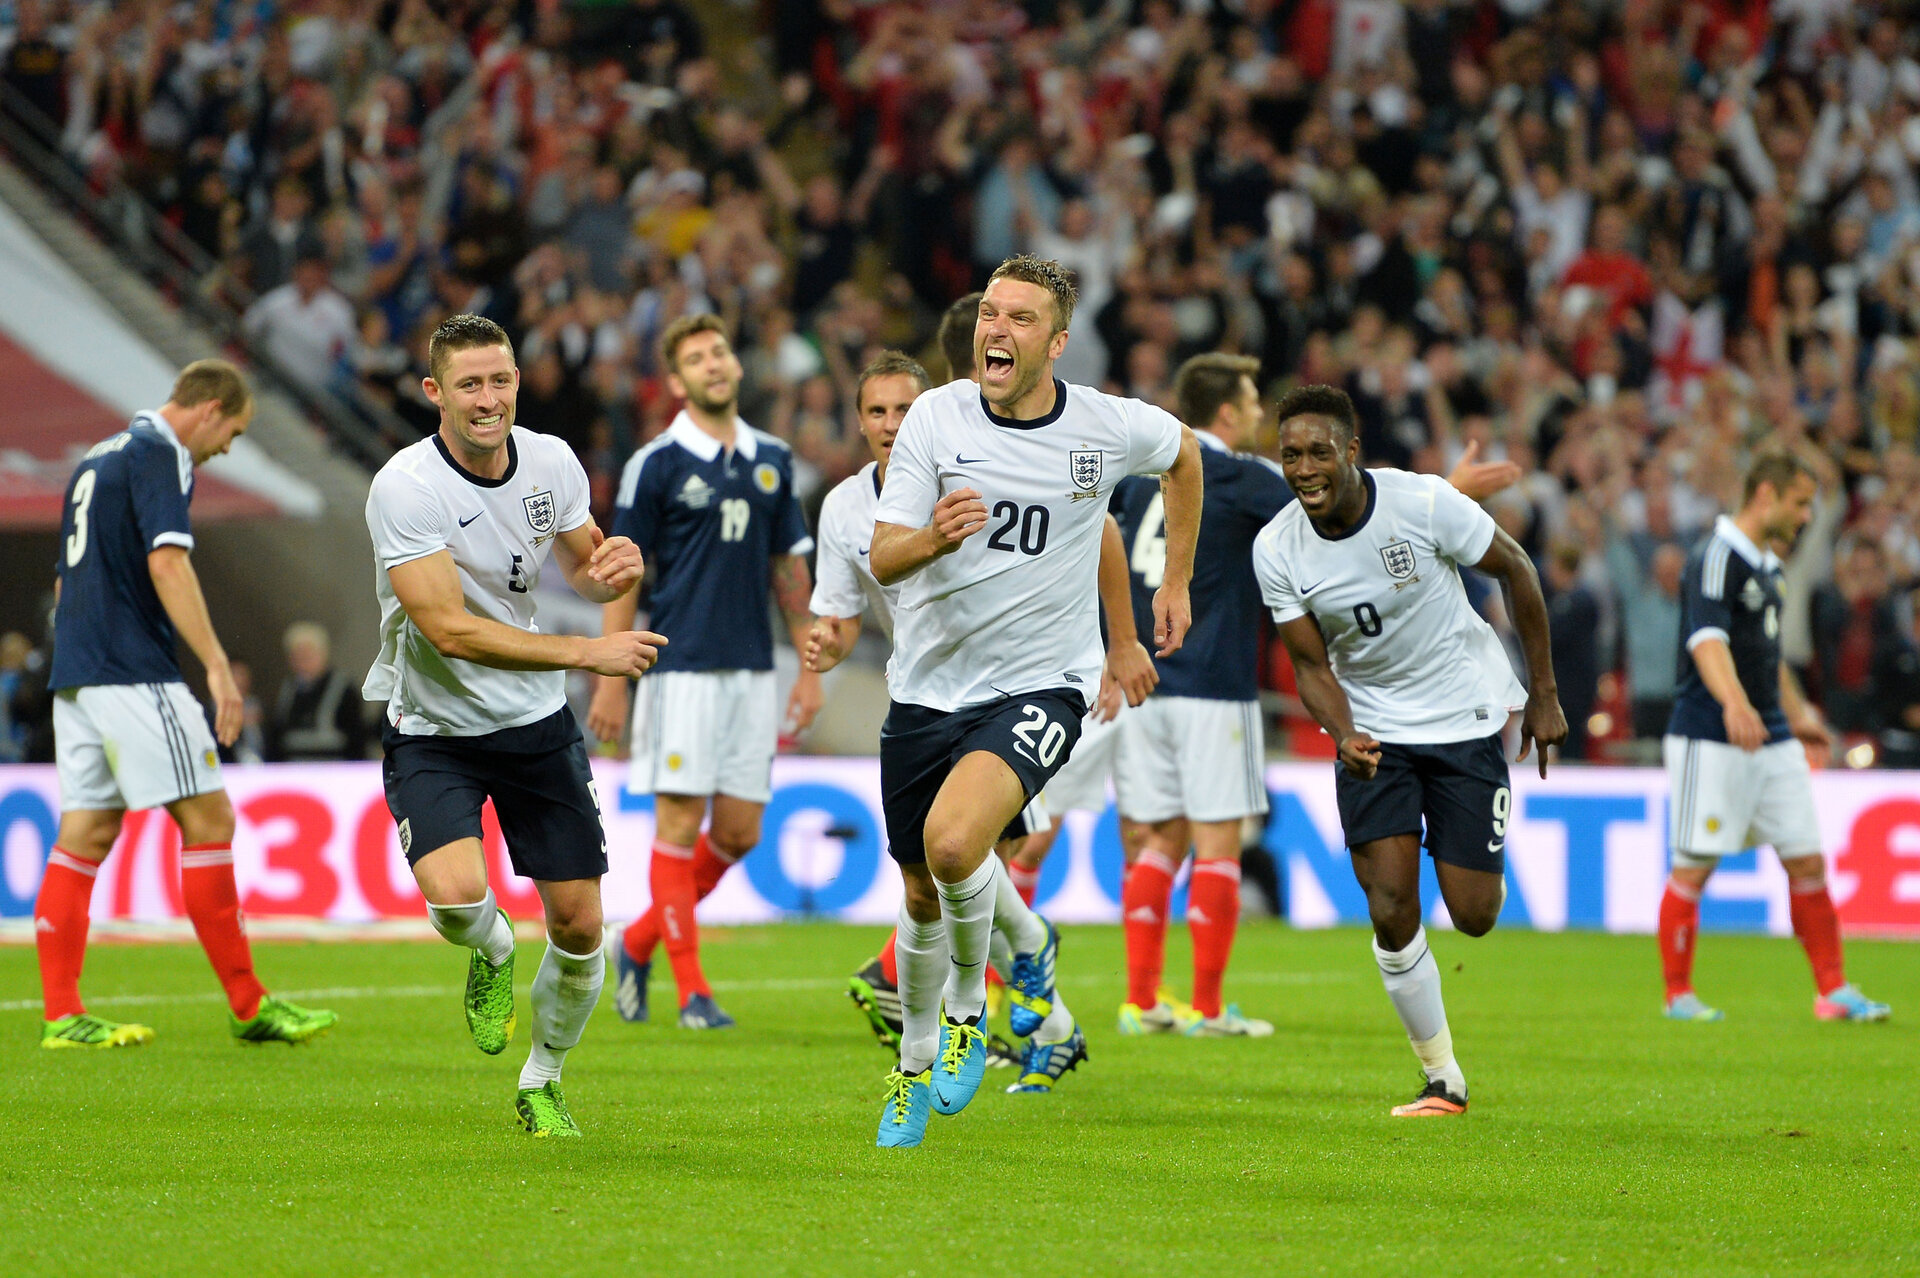 LONDON, ENGLAND - AUGUST 14:  Rickie Lambert of England (C) celebrates with team-mates Gary Cahill of England (L) and Danny Welbeck of England (R) after scoring a goal during the International Friendly match between England and Scotland at Wembley Stadium on August 14, 2013 in London, England.  (Photo by Mike Hewitt/Getty Images)